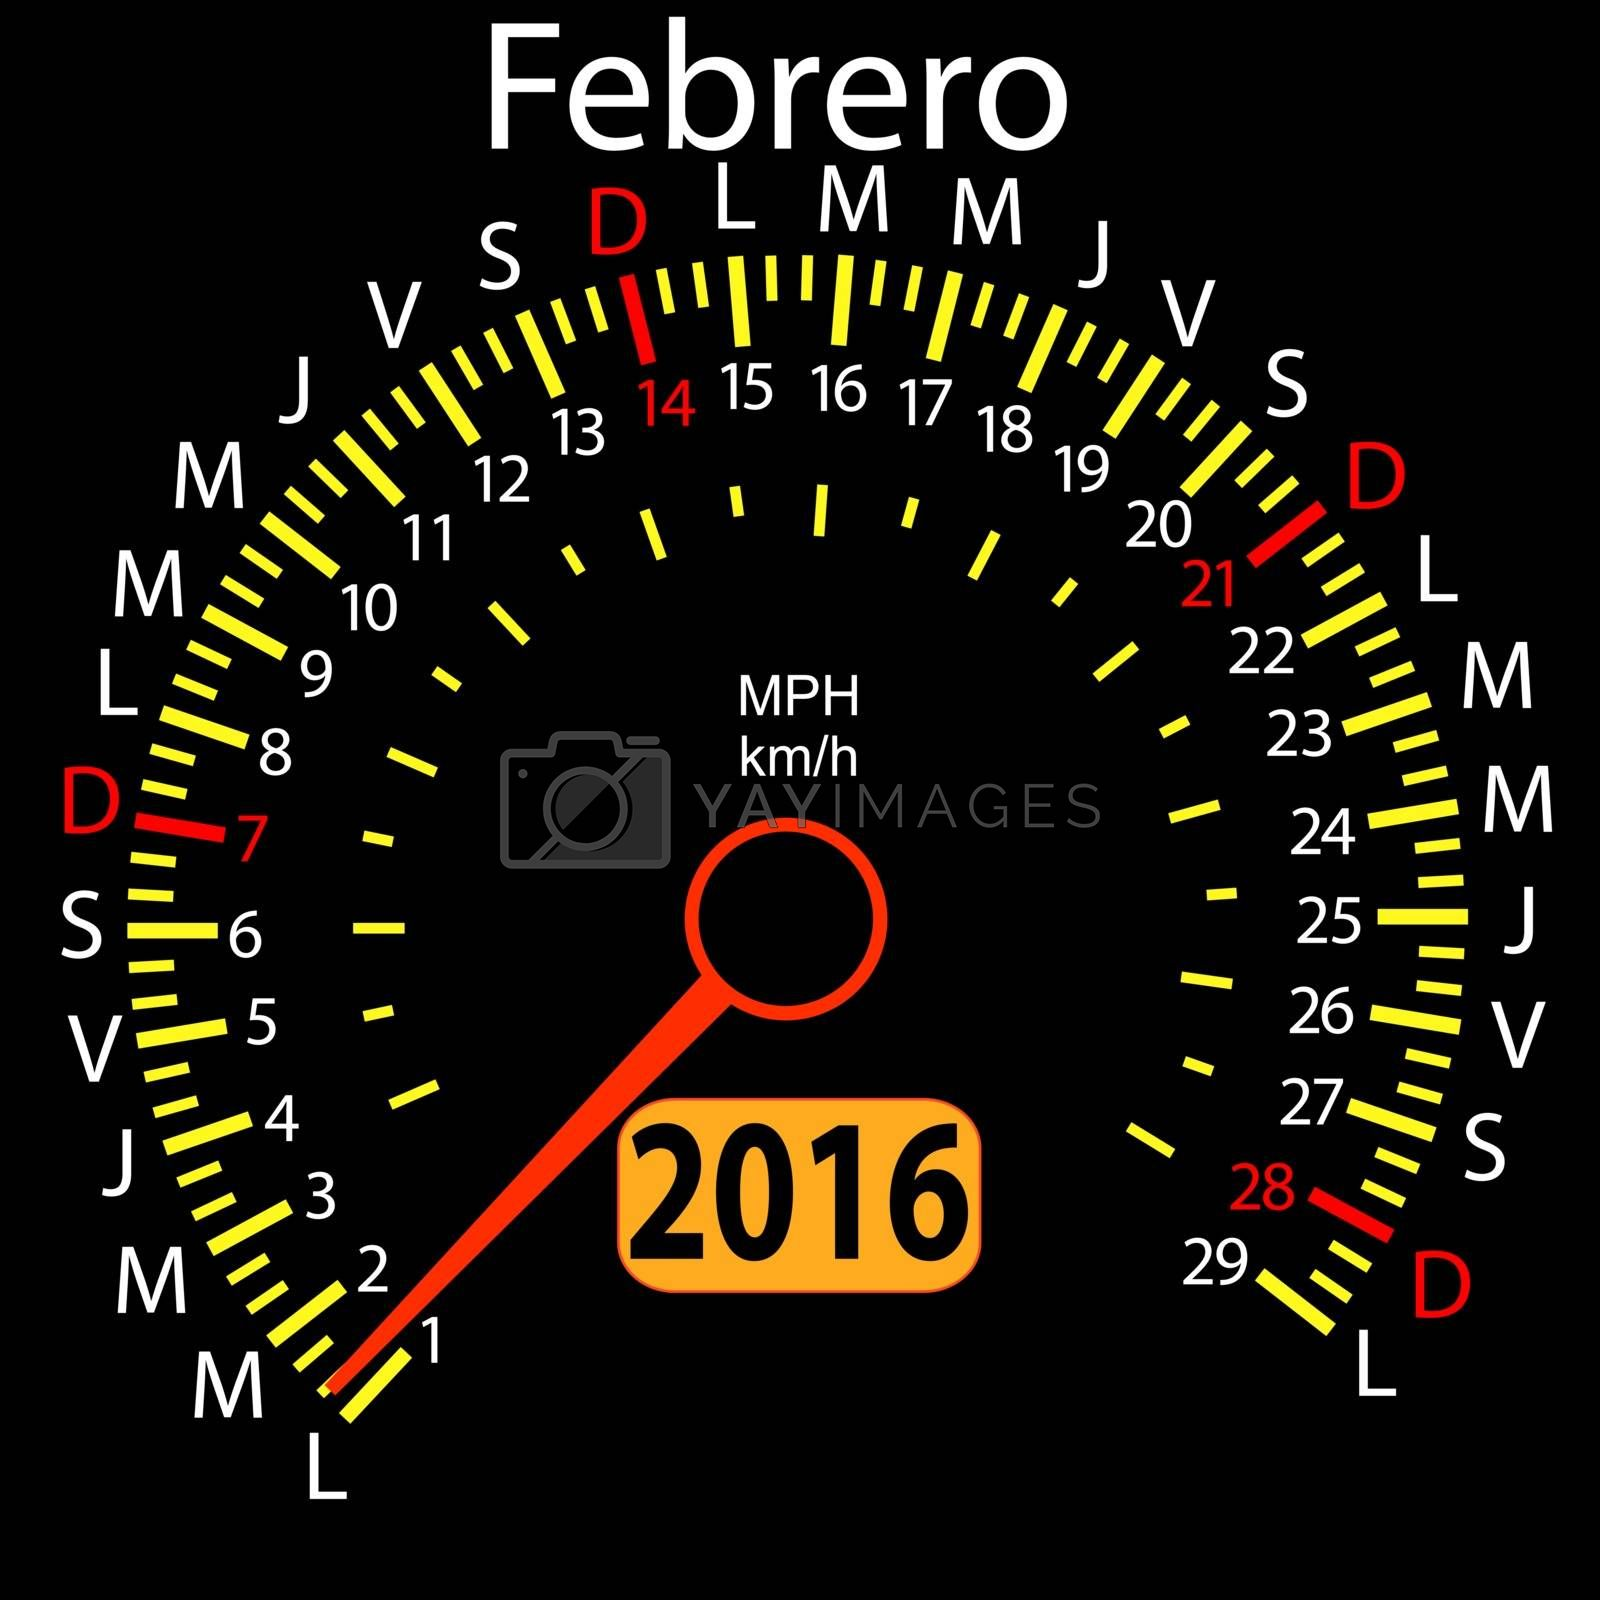 2016 year calendar speedometer car in Spanish, February. Vector illustration.